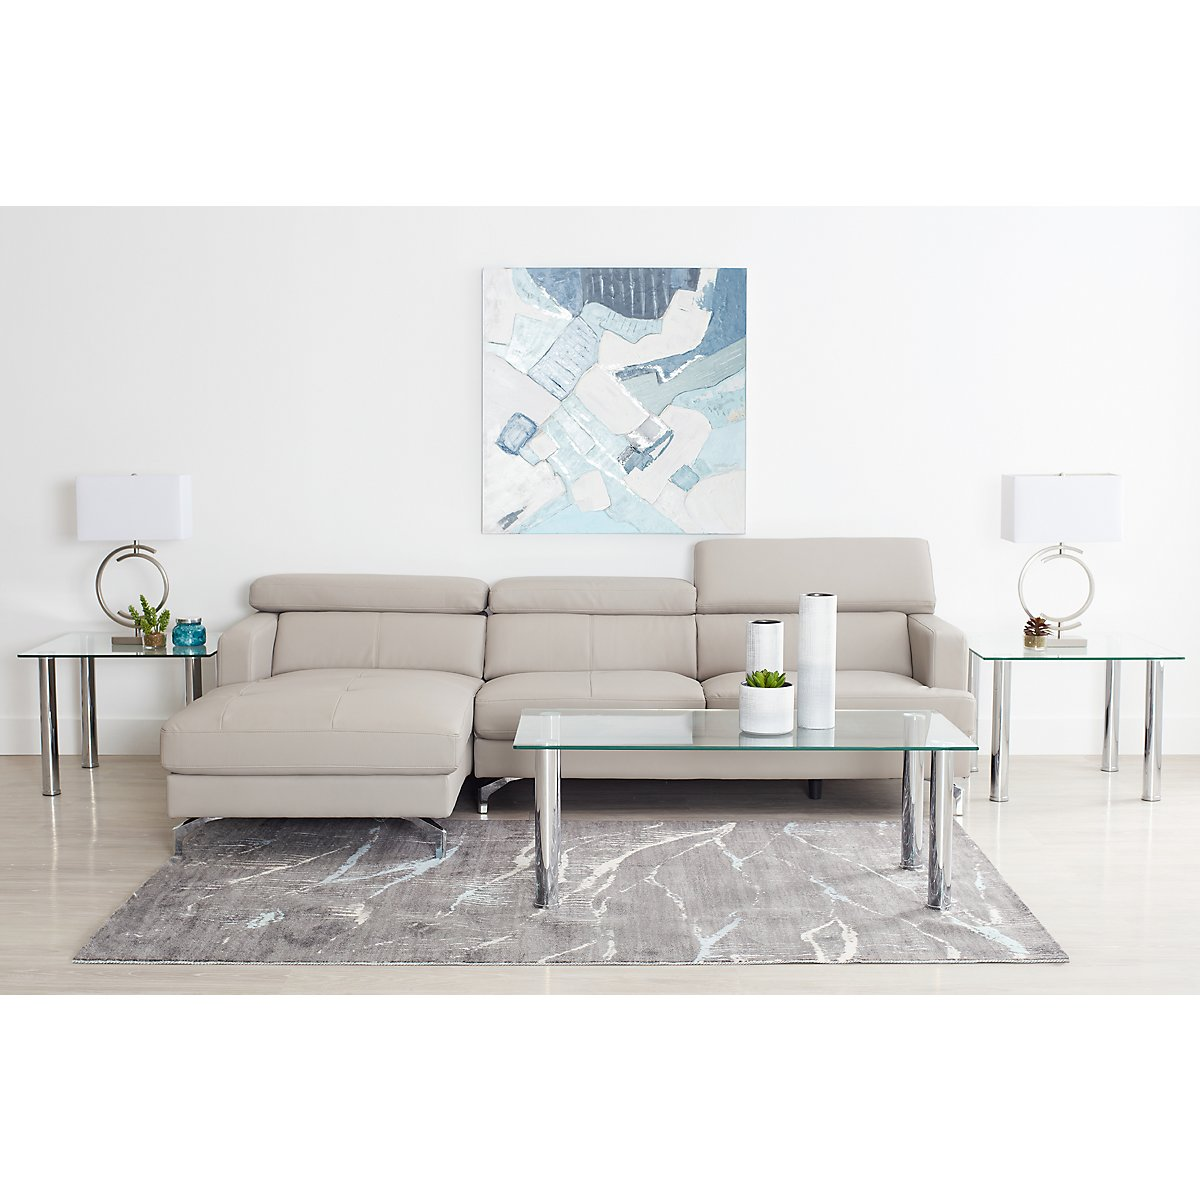 City Furniture: Marquez Gray Left 6-Piece Living Room Package